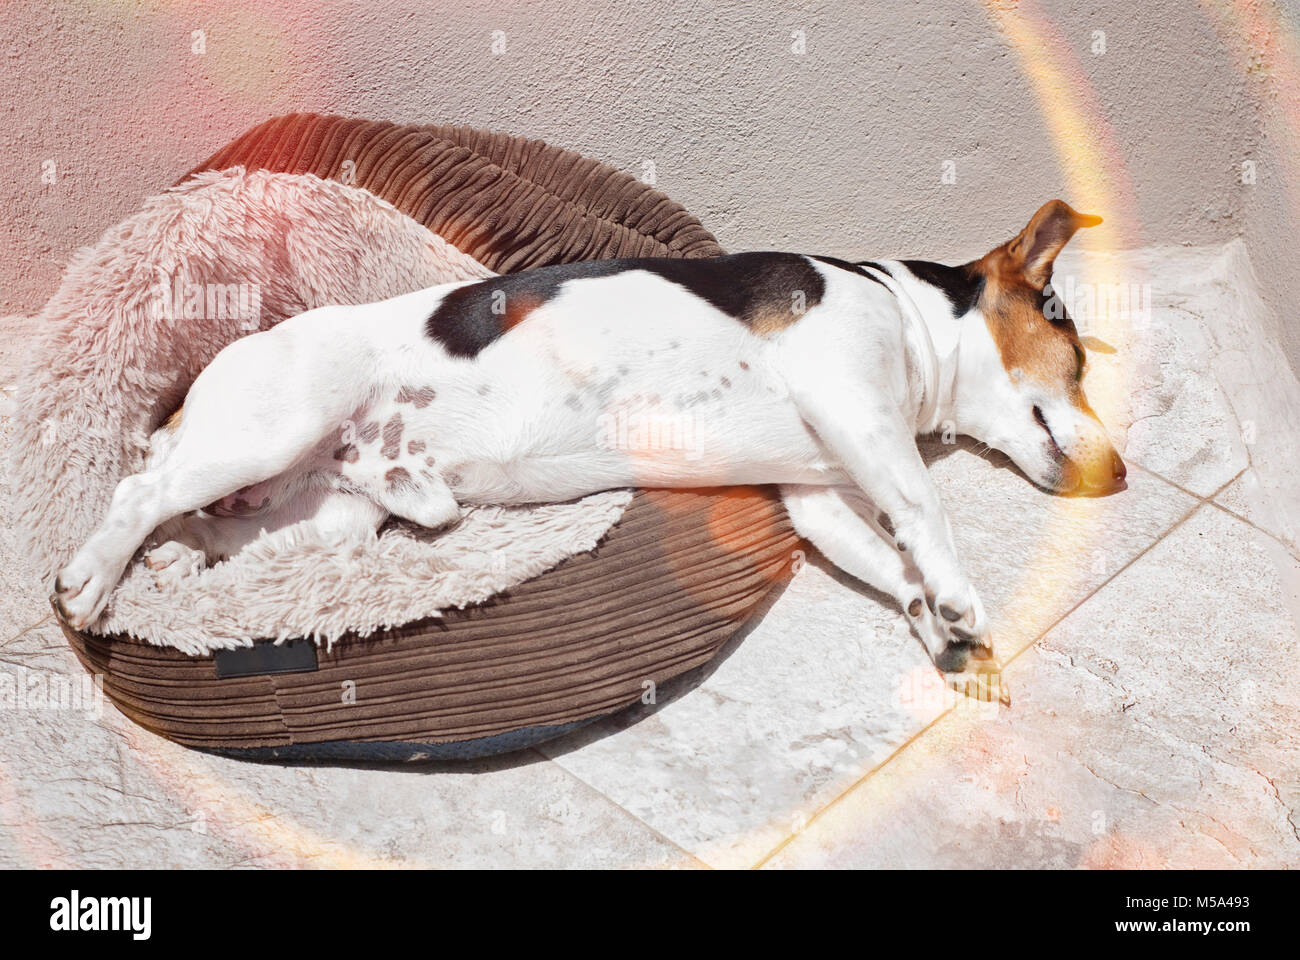 Jack russell terrier dog sleeping in the sun on the balcony, Dog's heatstroke protection concept, sunbeams effect - Stock Image